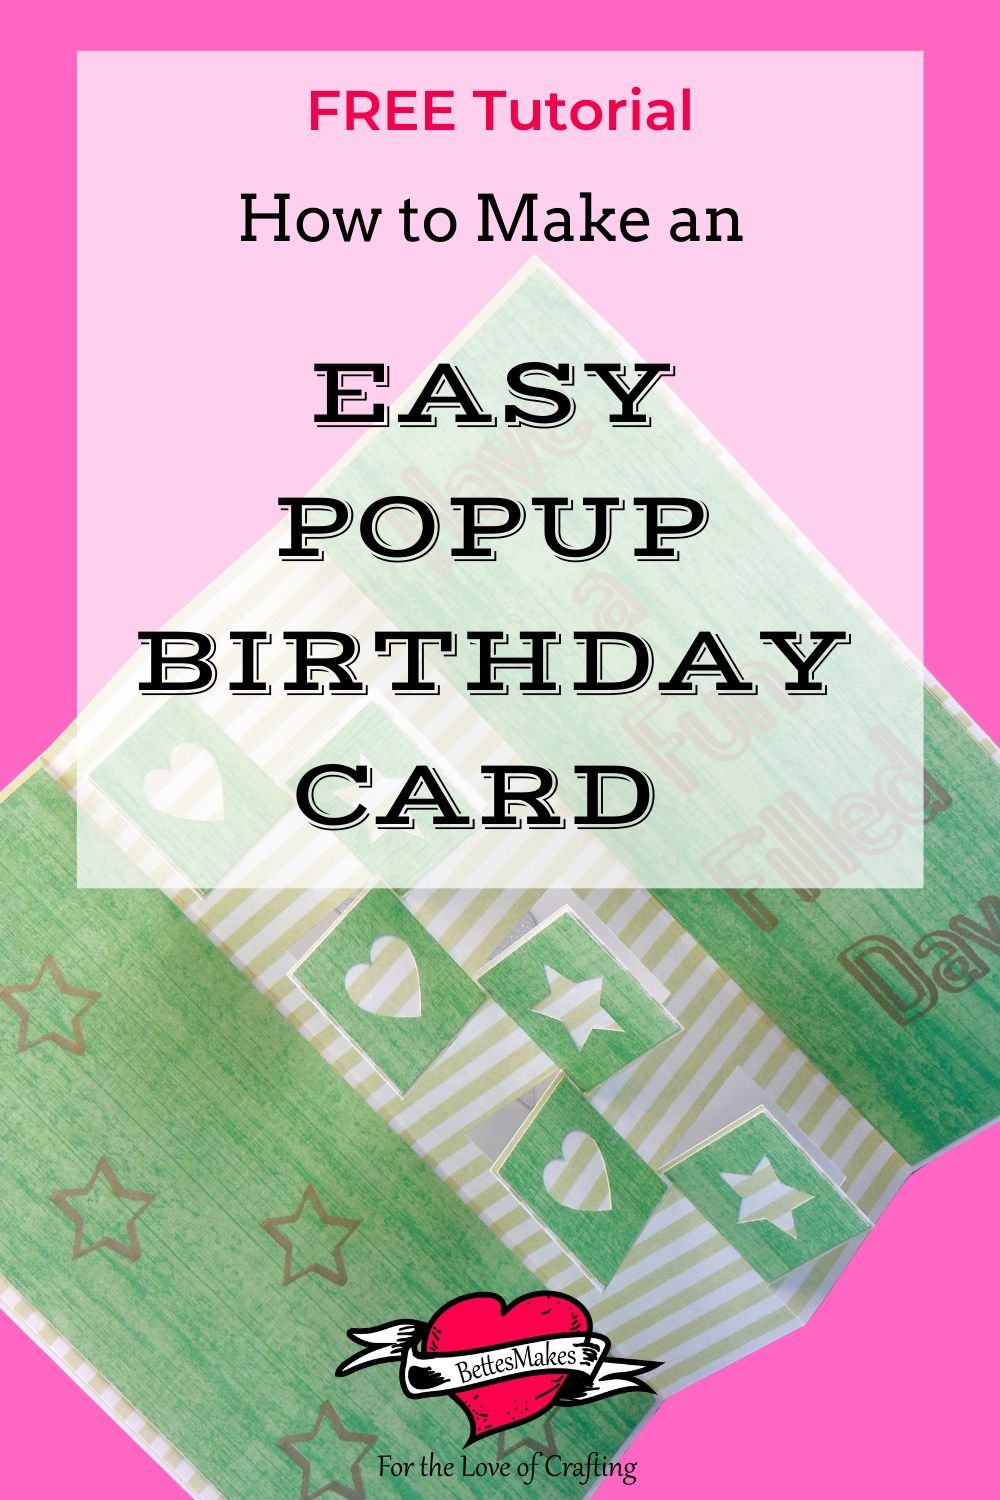 How to Make an Easy Popup Birthday Card